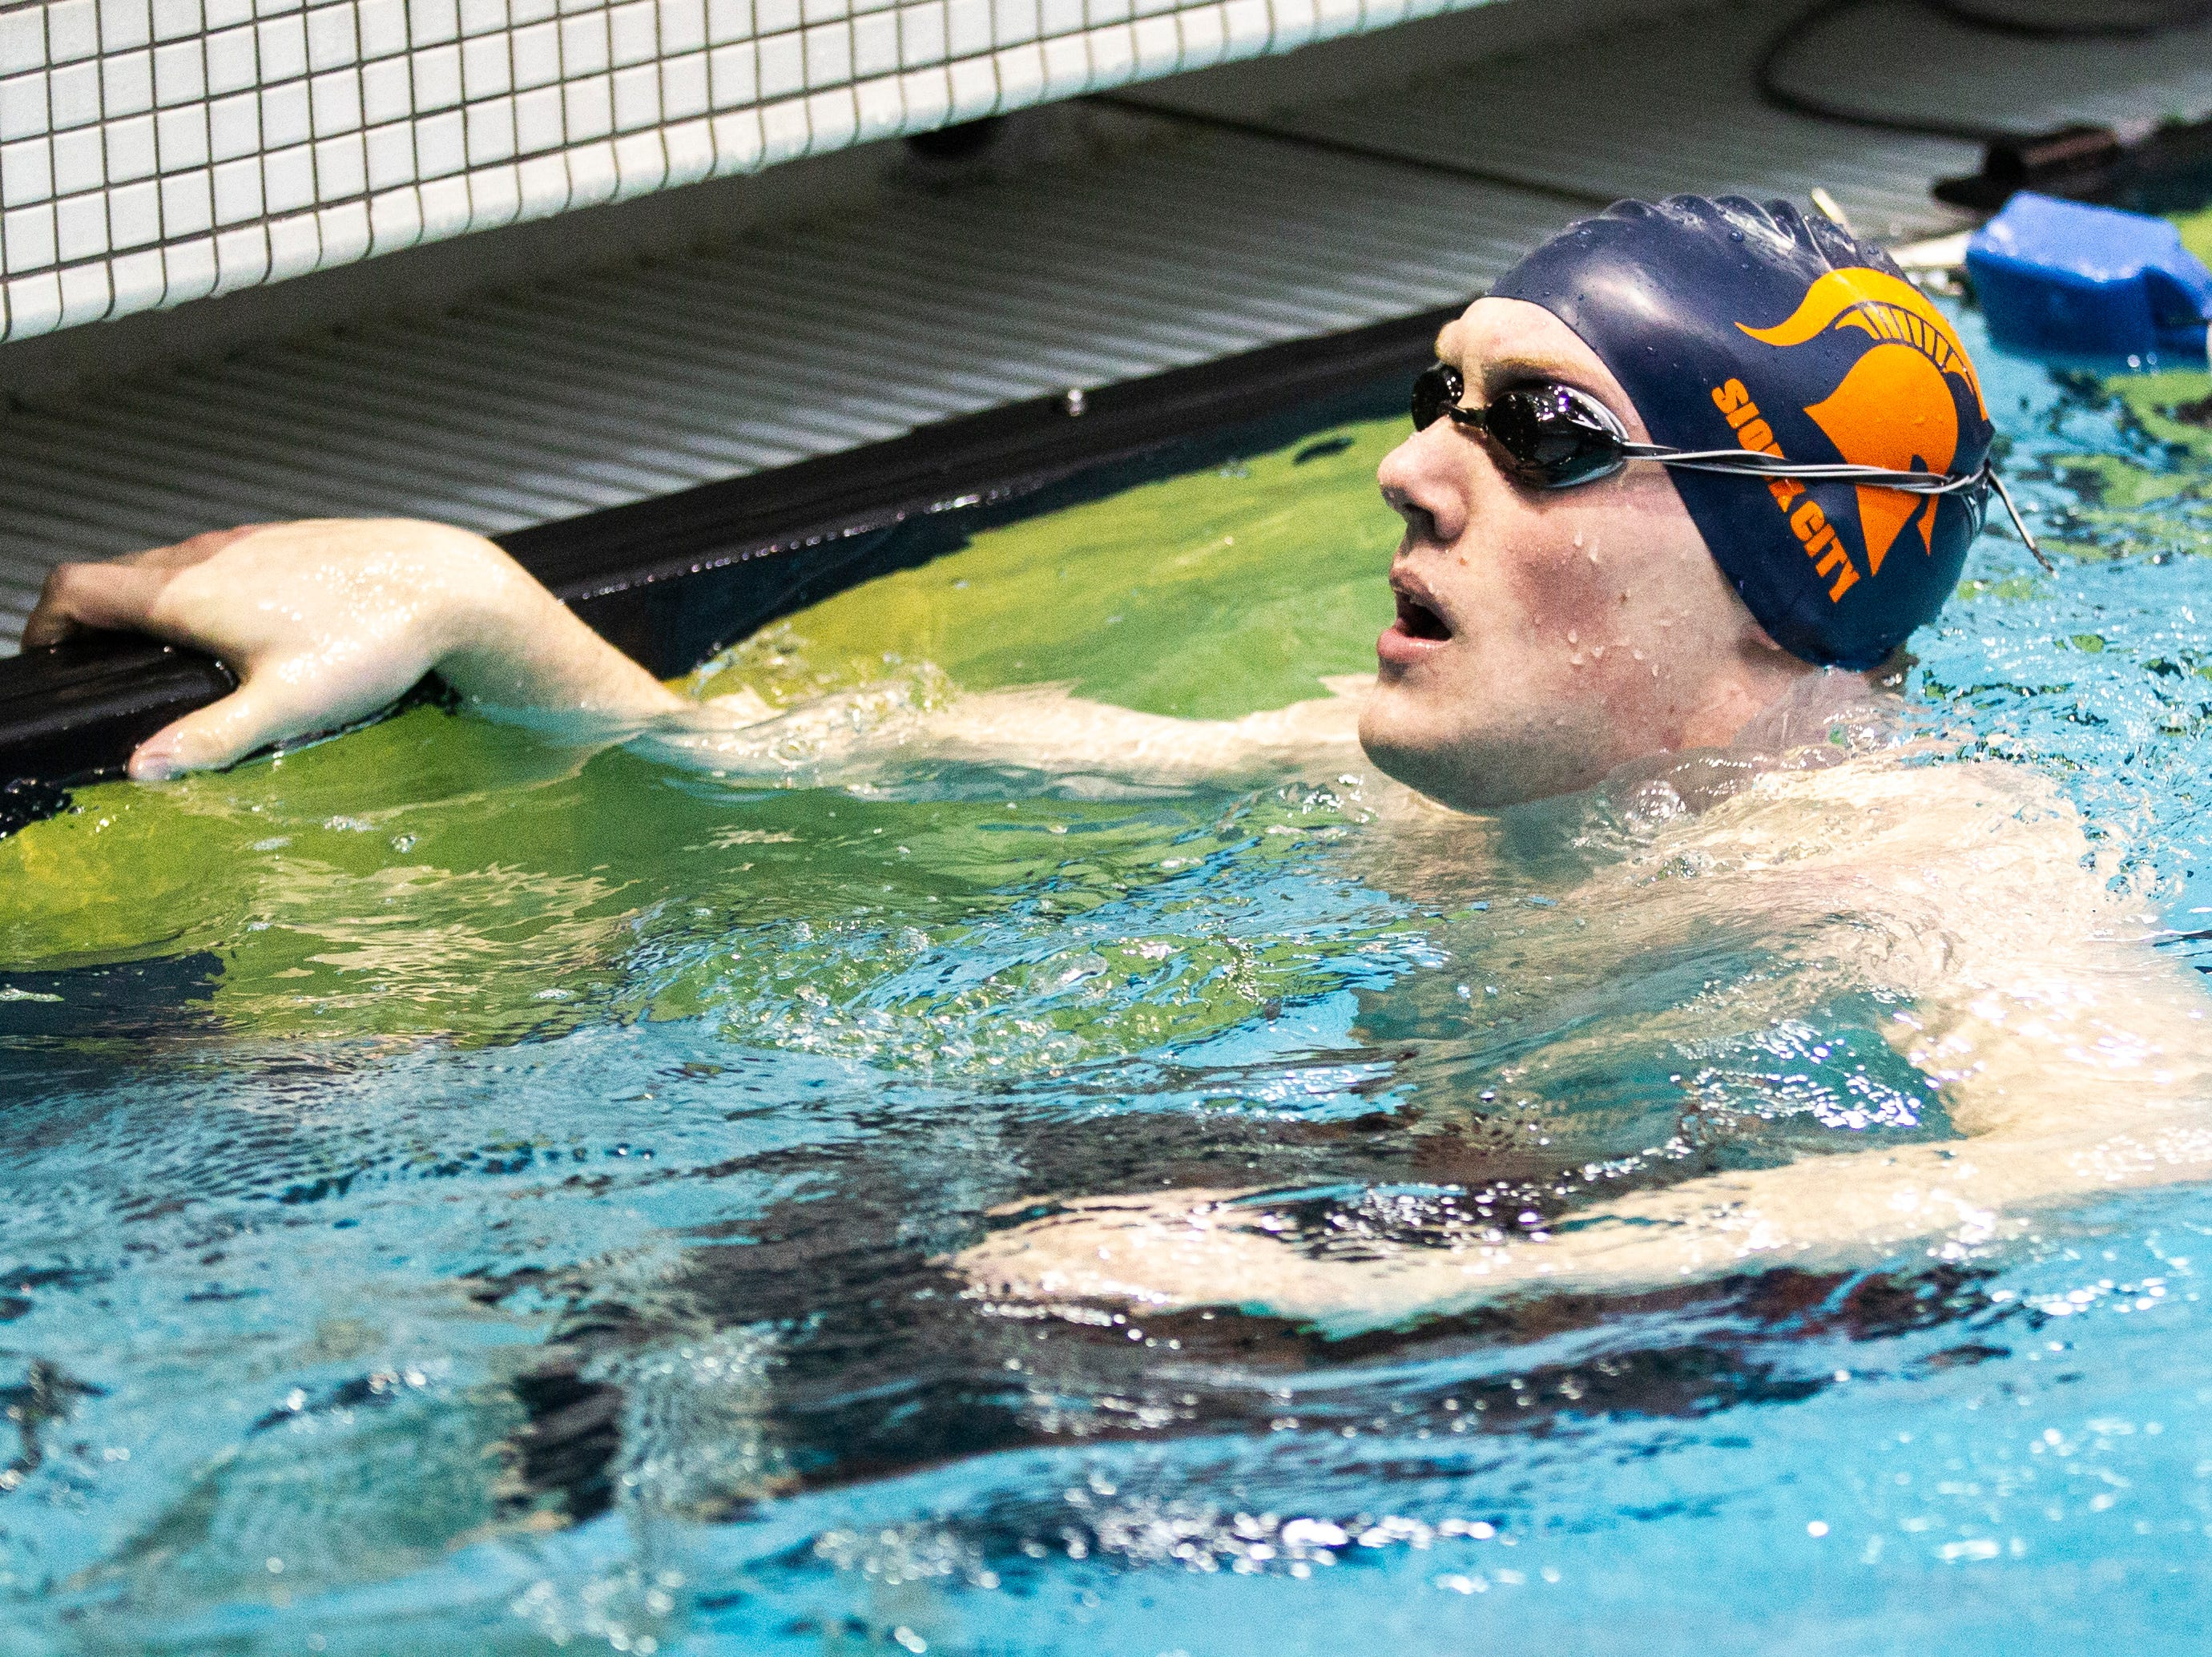 Sioux City Metro senior William Rankin reacts after finish second in the second heat of 400 yard freestyle relay during the Iowa boys' state swimming regional championship meet on Saturday, Feb. 9, 2019 at Campus Recreation and Wellness Center on the University of Iowa campus in Iowa City, Iowa. Sioux City Metro finished eighth overall, with a time of 3:14.49.